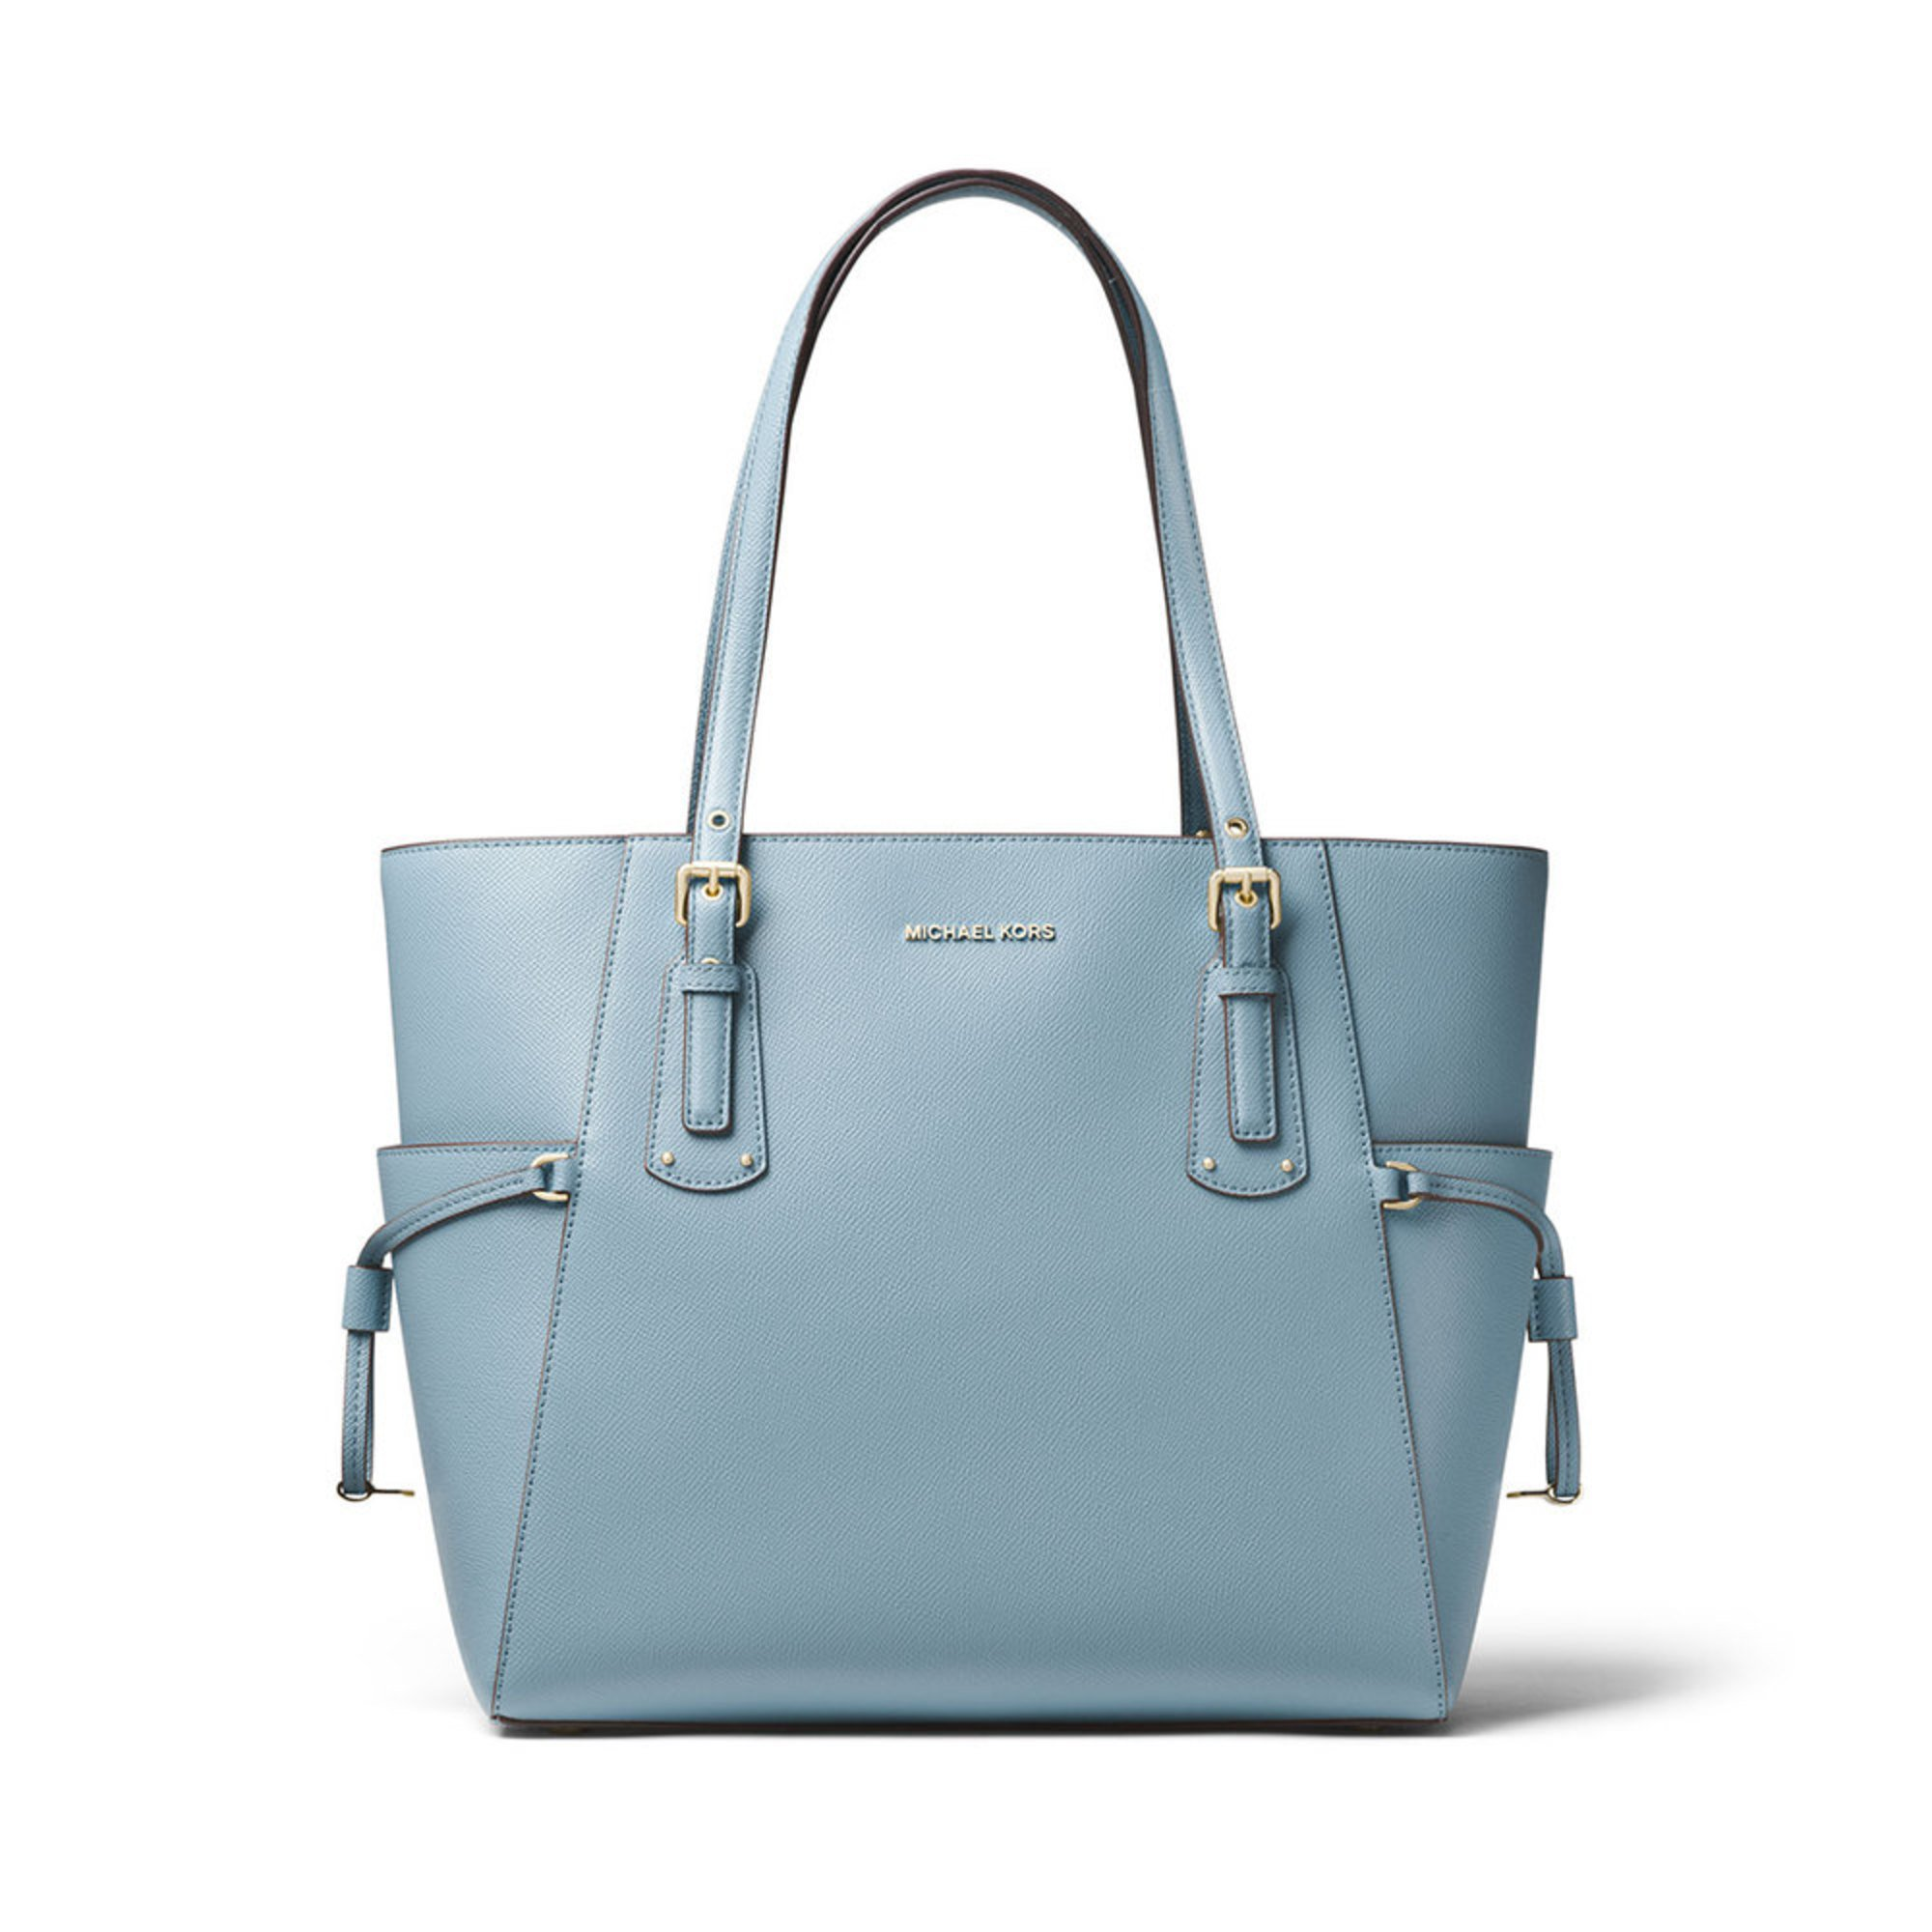 51e3bed52d Michael Kors Voyager East west Tote